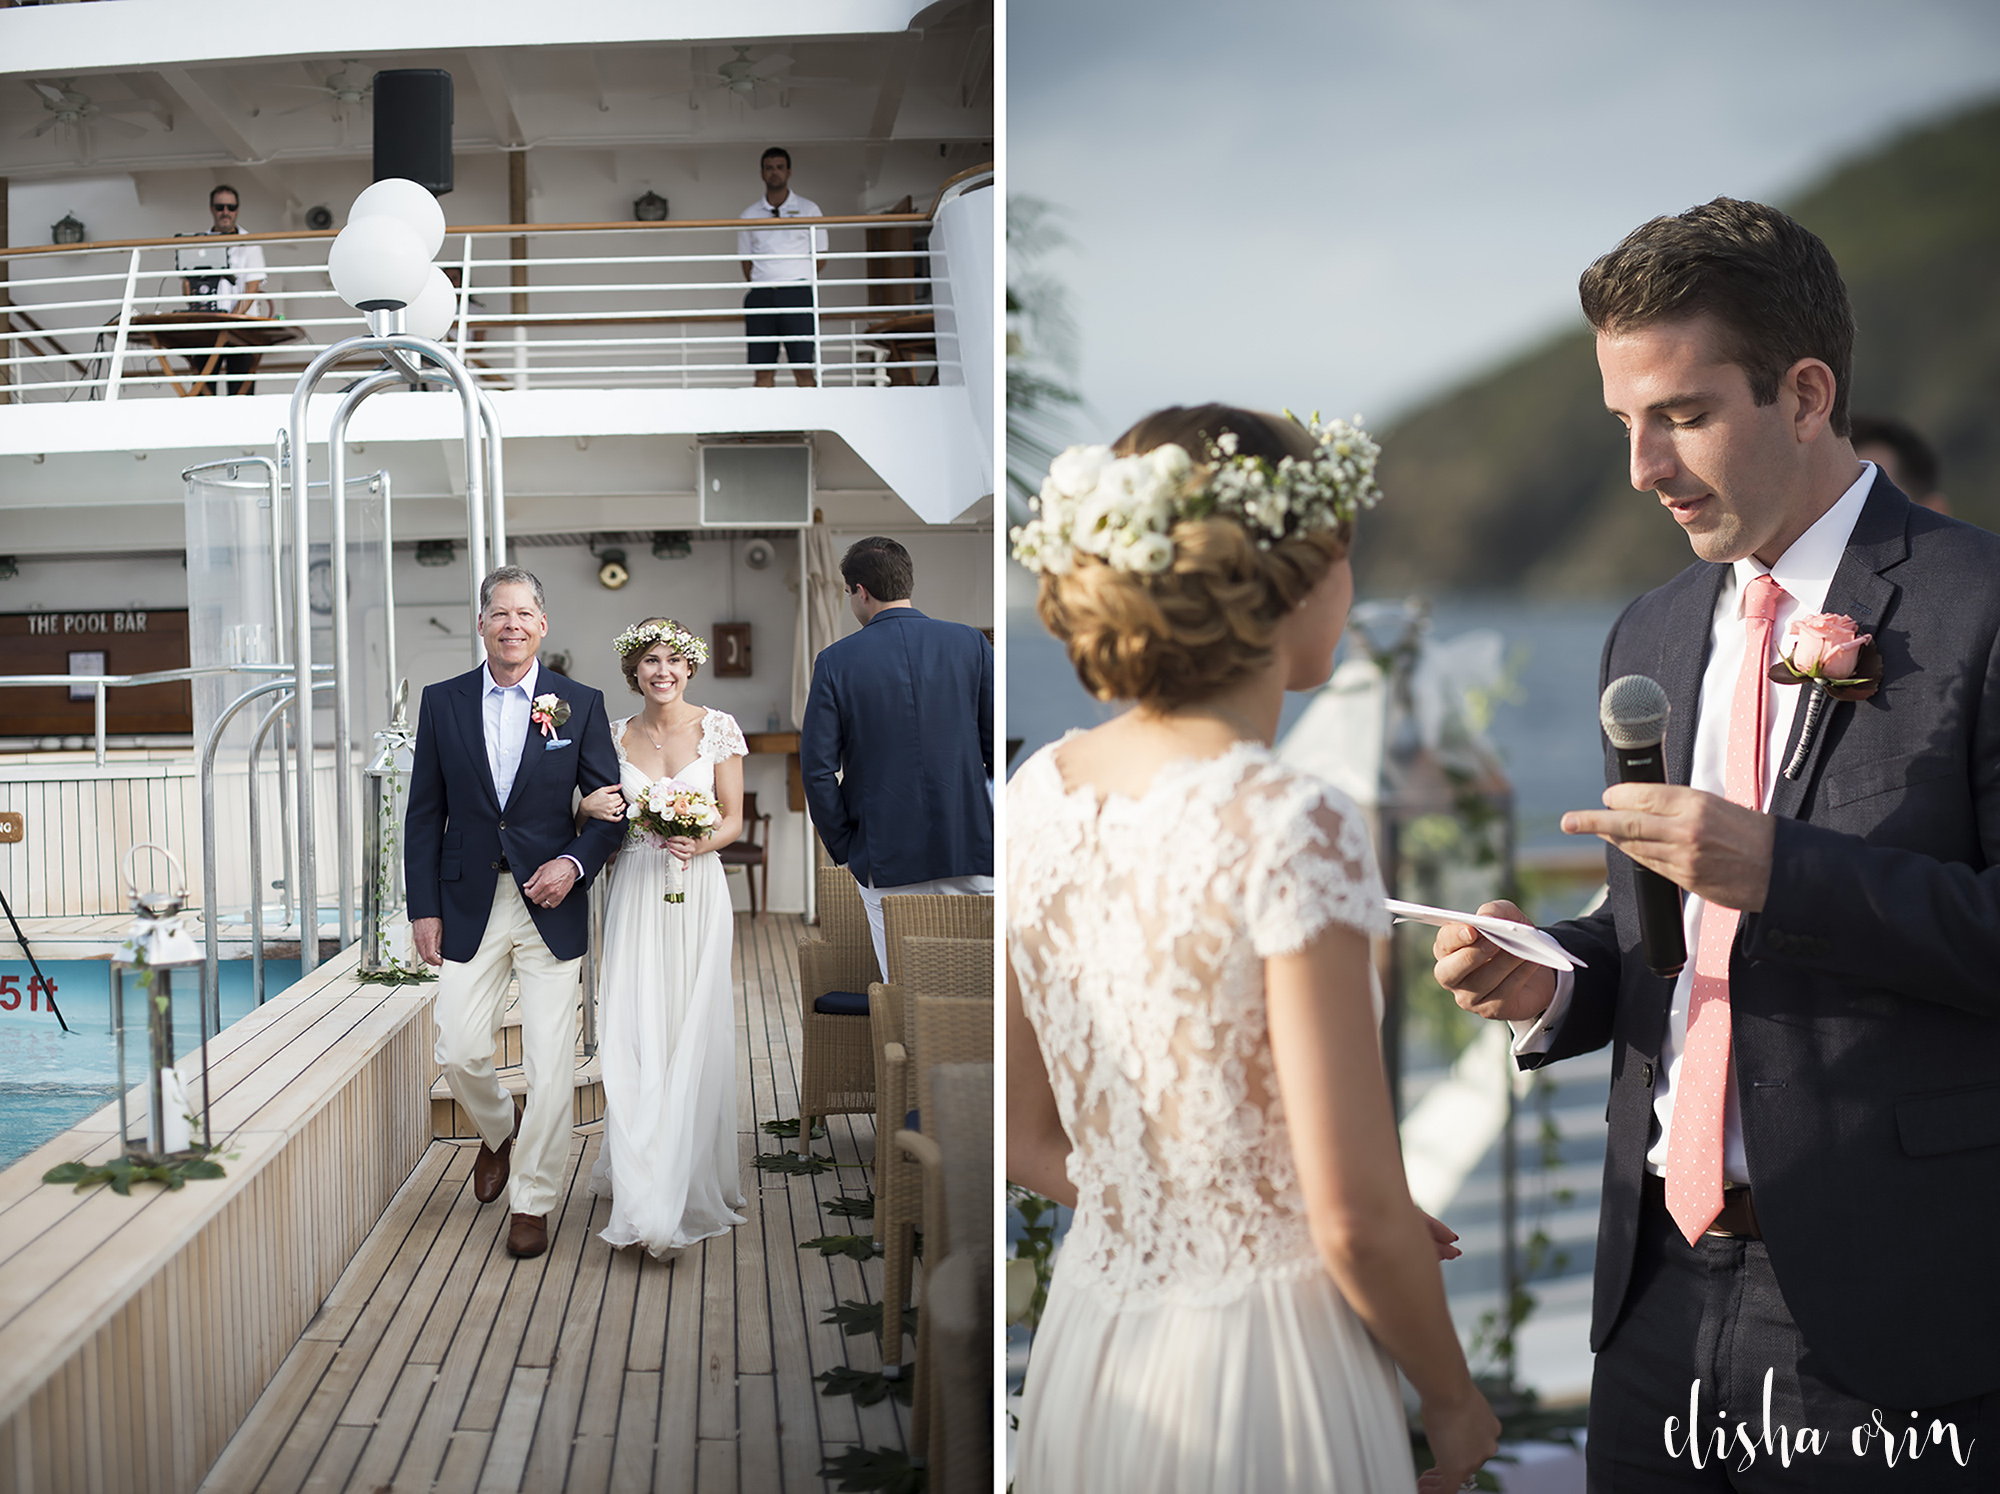 wedding-in-st-barts-on-a-ship